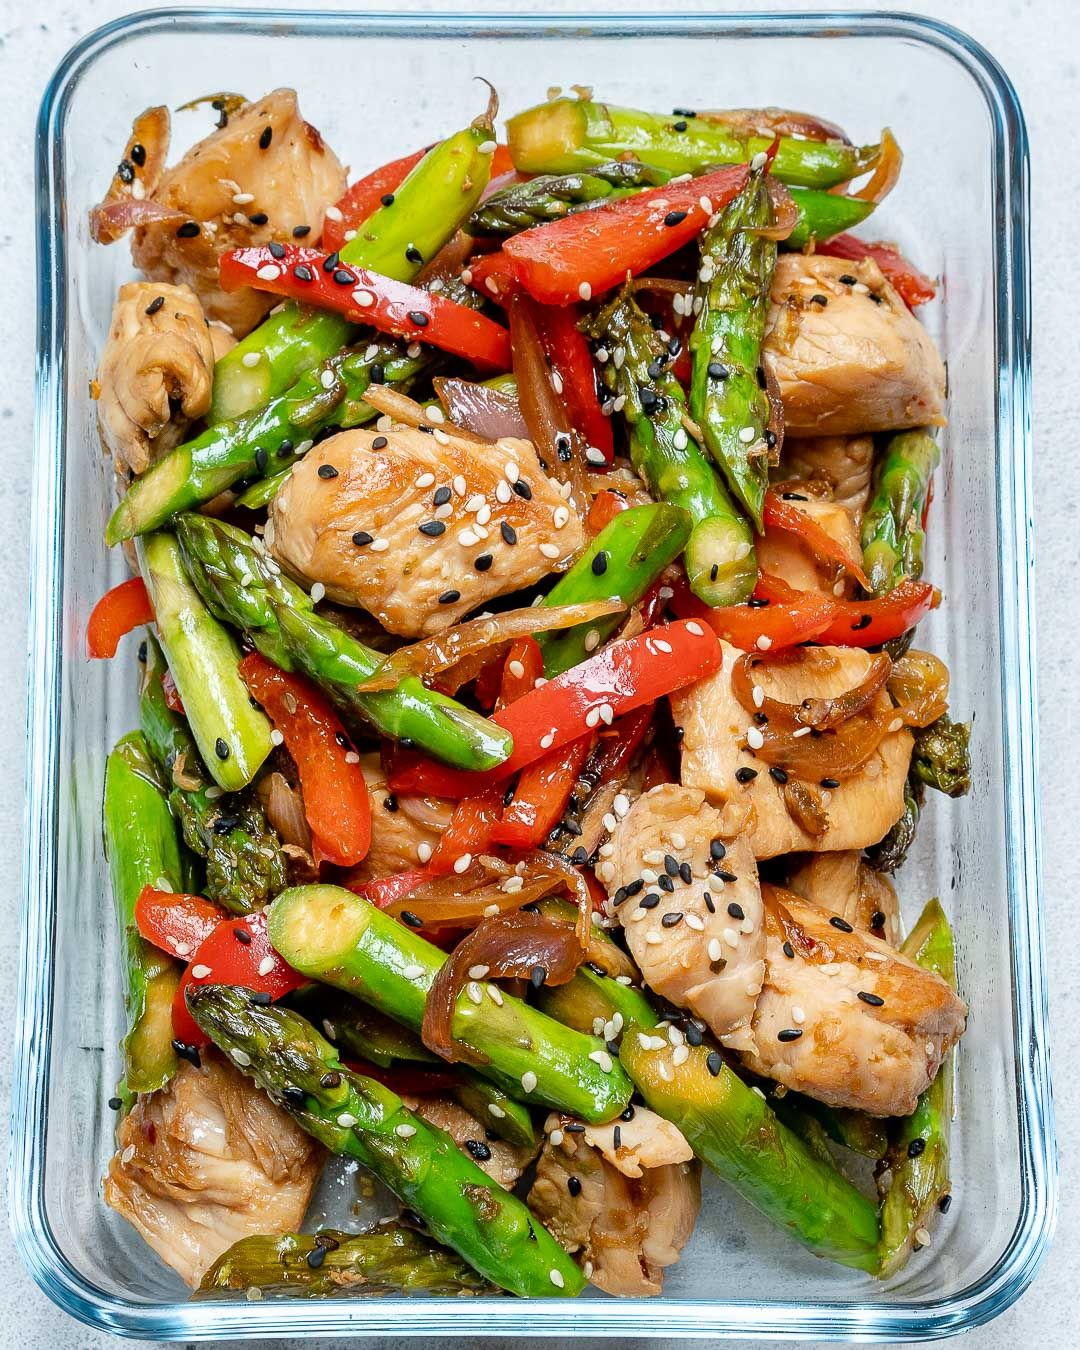 Super-Easy Turkey Stir-Fry for Clean Eating Meal Prep images